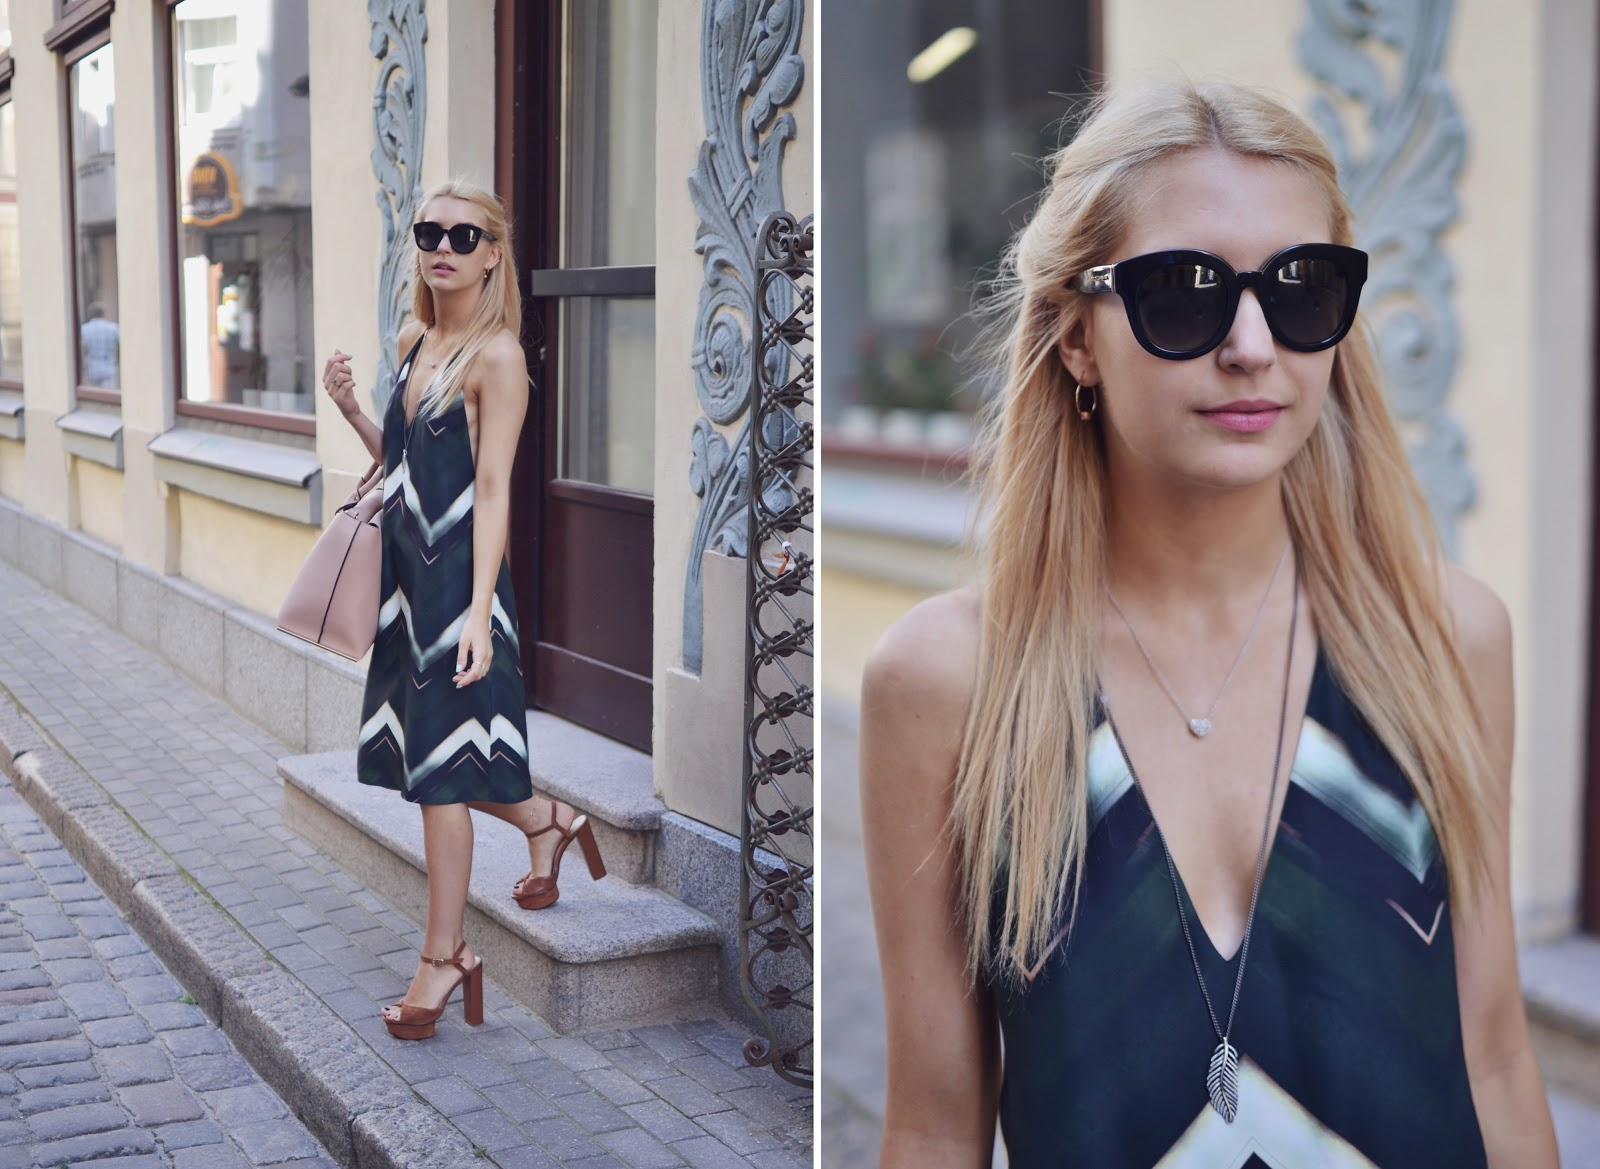 Latvian fashion blog